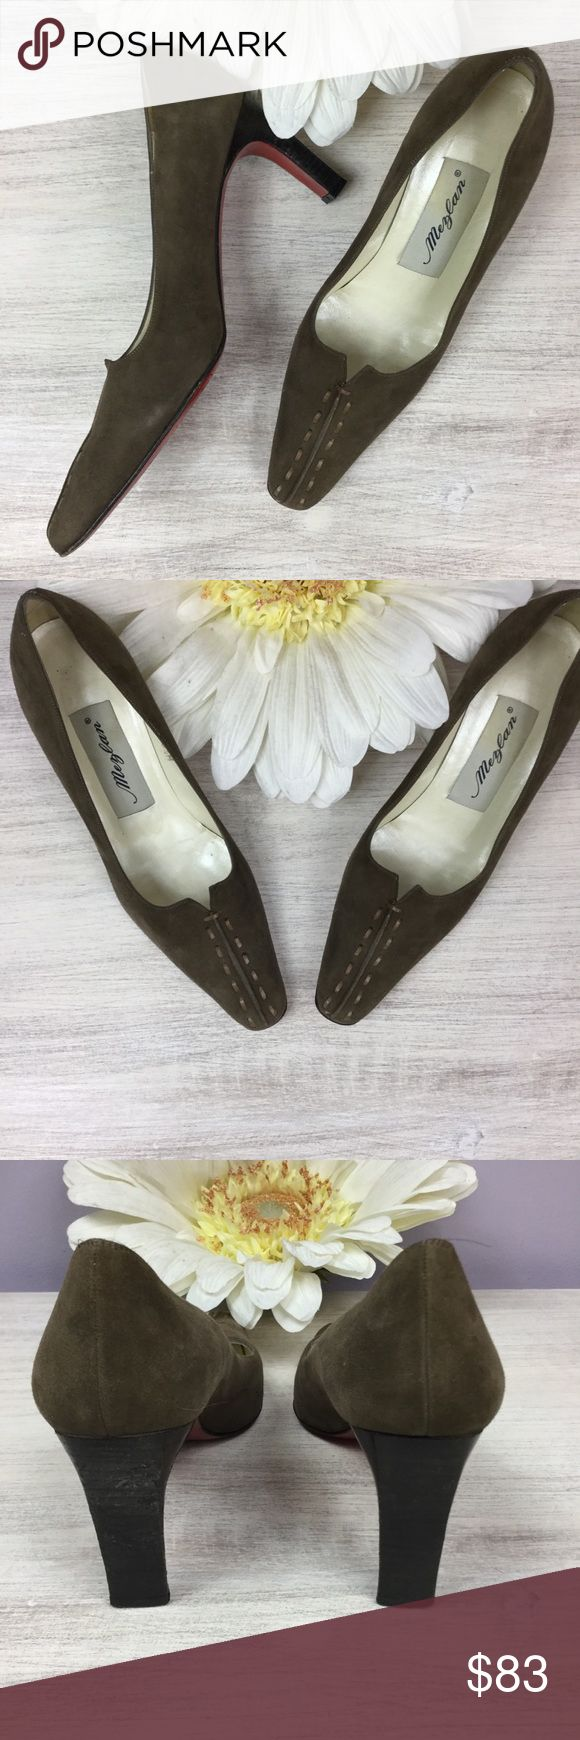 Mezlan Vero Cuio red bottom shoes! Ladies, it doesn't get any more magnificent than these shoes! Authentic olive brown suede Mezlan Vero Cuoio heels with red bottom soles. As you can see they are in great condition. Minor wear on soles. Made in Spain. A treasure for any shoe lover! Mezlan Shoes Heels